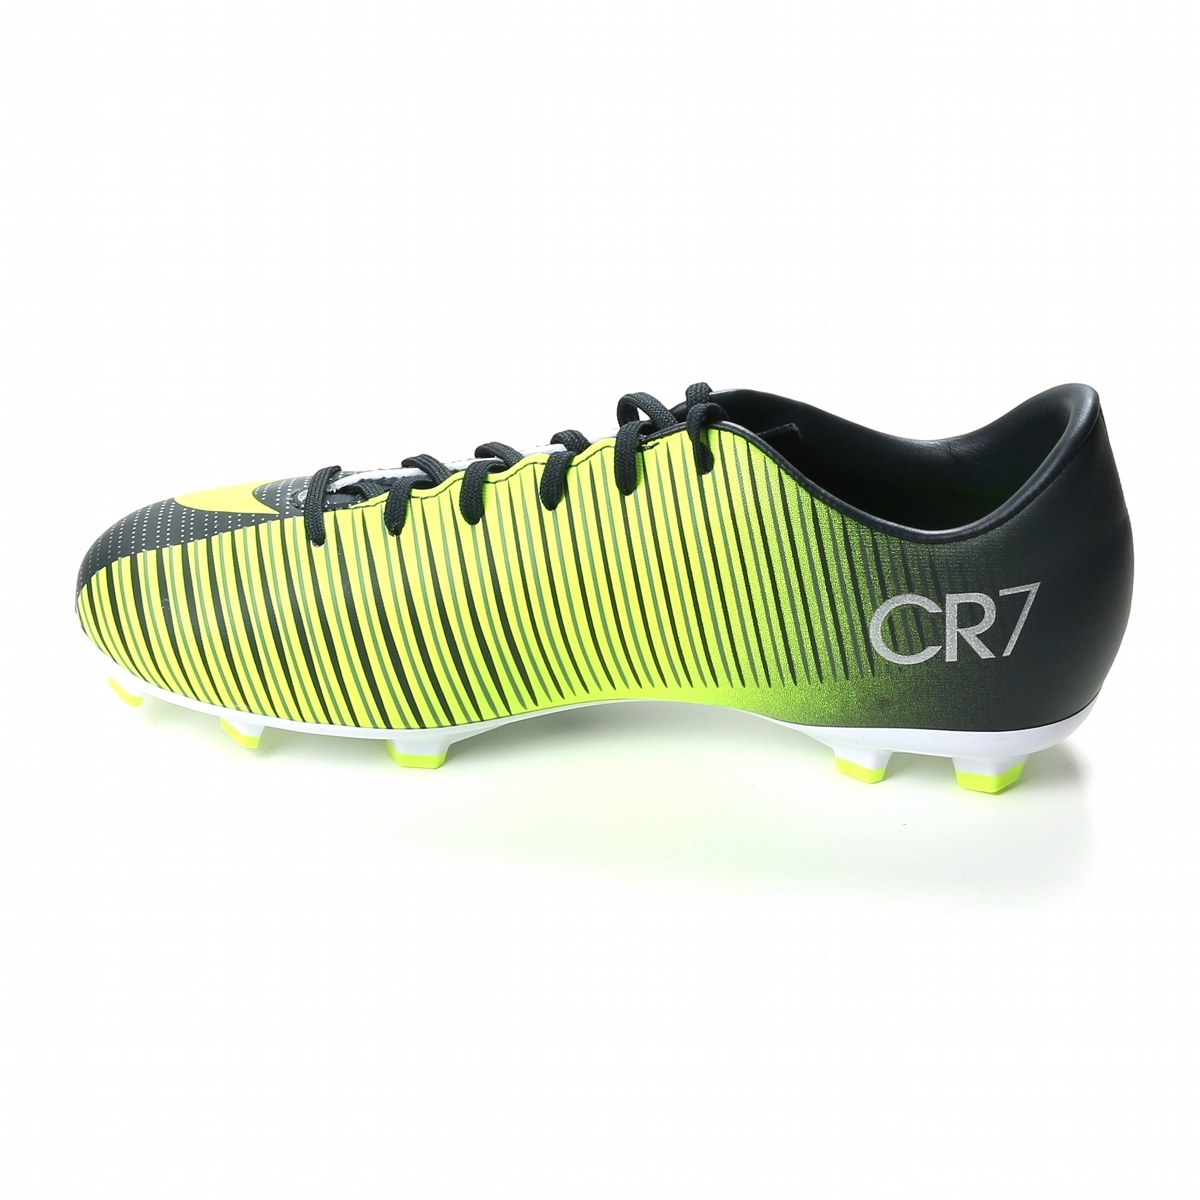 7ac5ef70c39 ... usa nike youth mercurial vapor xi cr7 fg soccer cleats seaweed volt  hasta white 852489 376